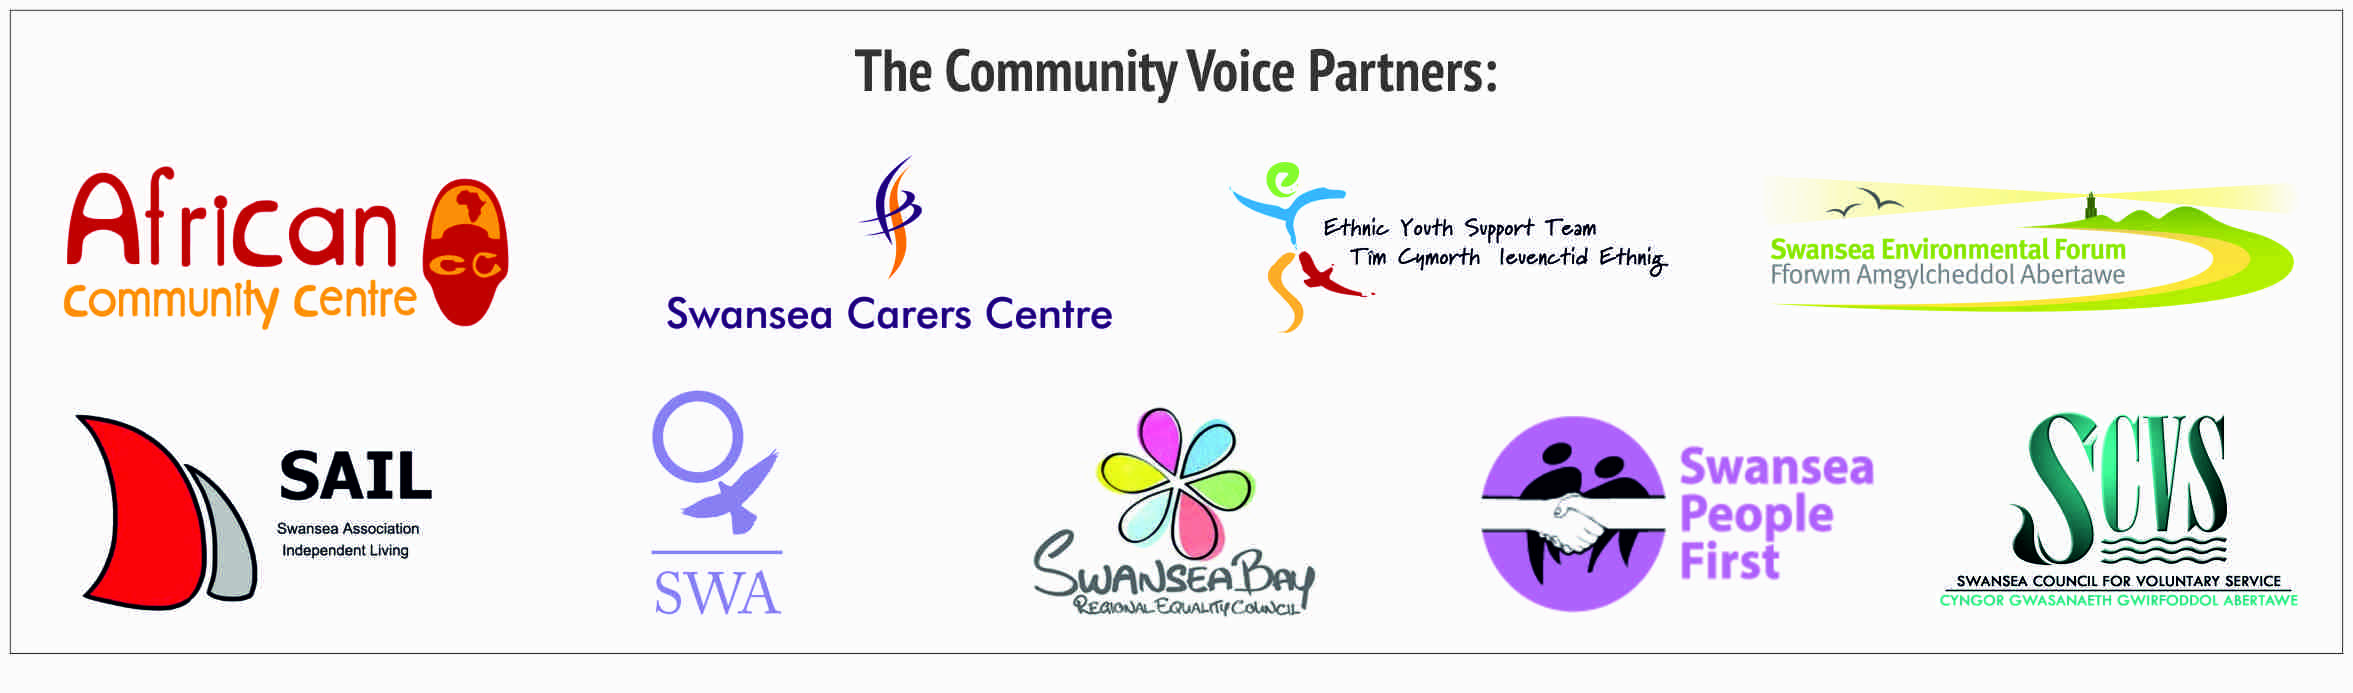 Combined image of all Community Voice partner logos